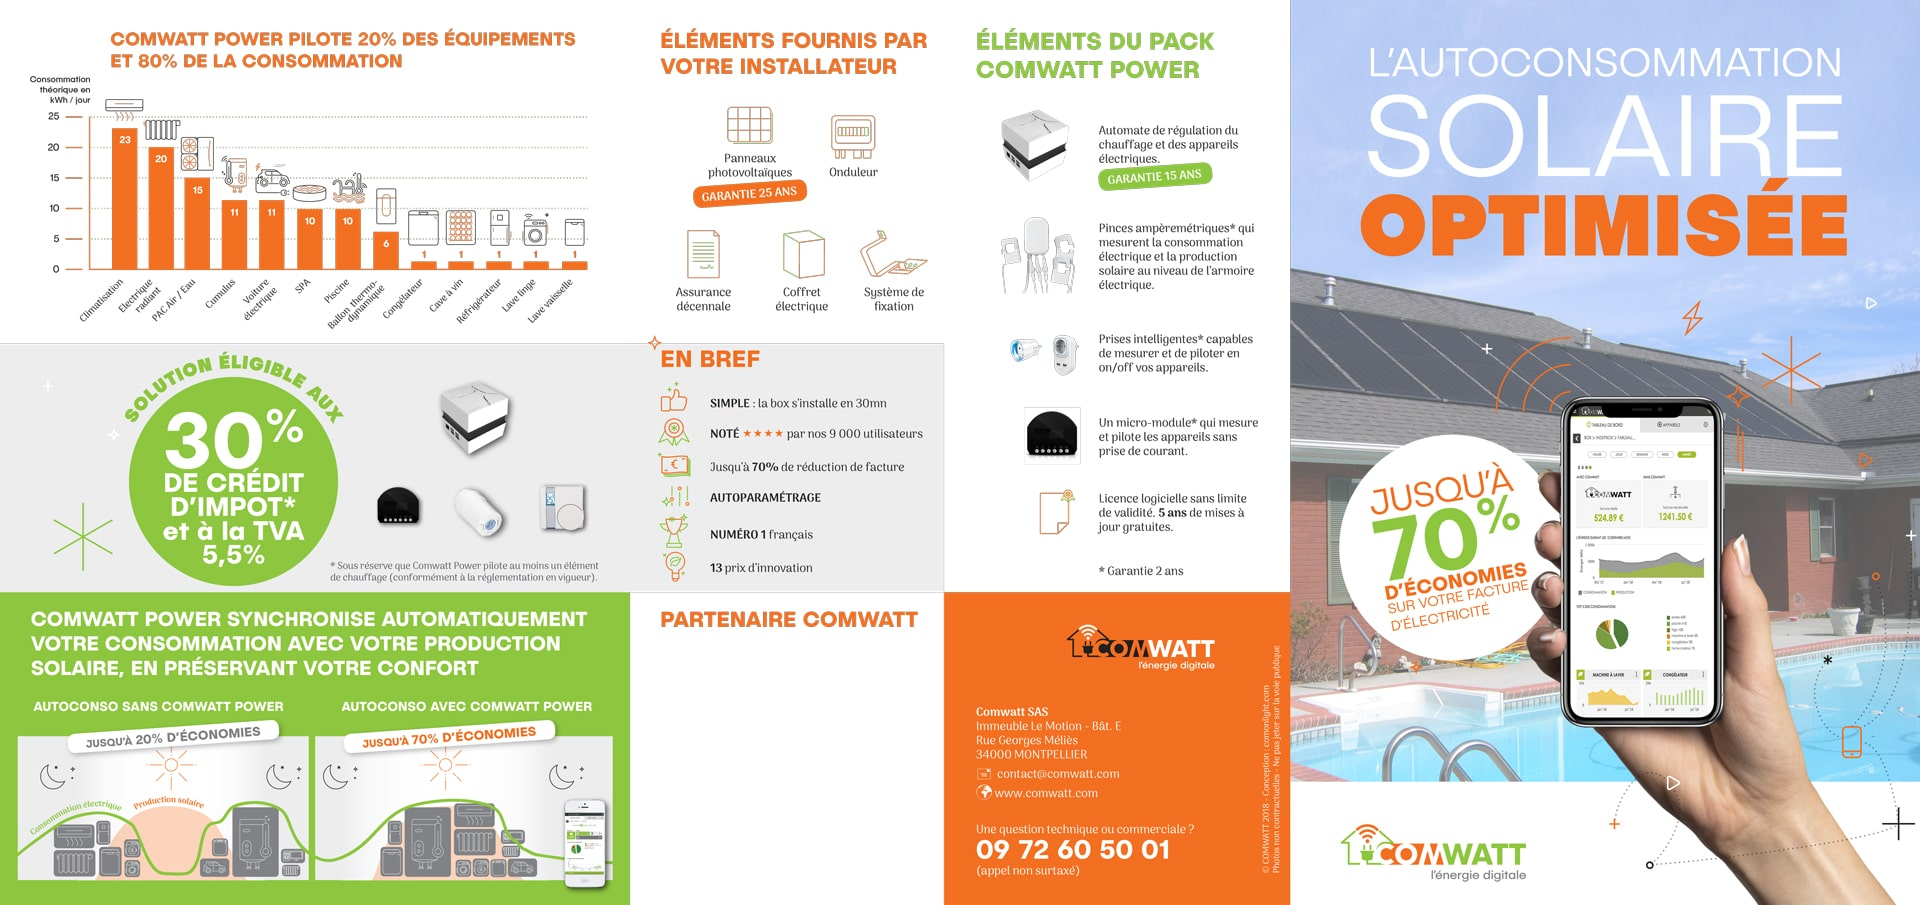 https://capsolr.fr/wp-content/uploads/2019/08/Plaquette-Commerciale-ComWatt-Power-1.jpg